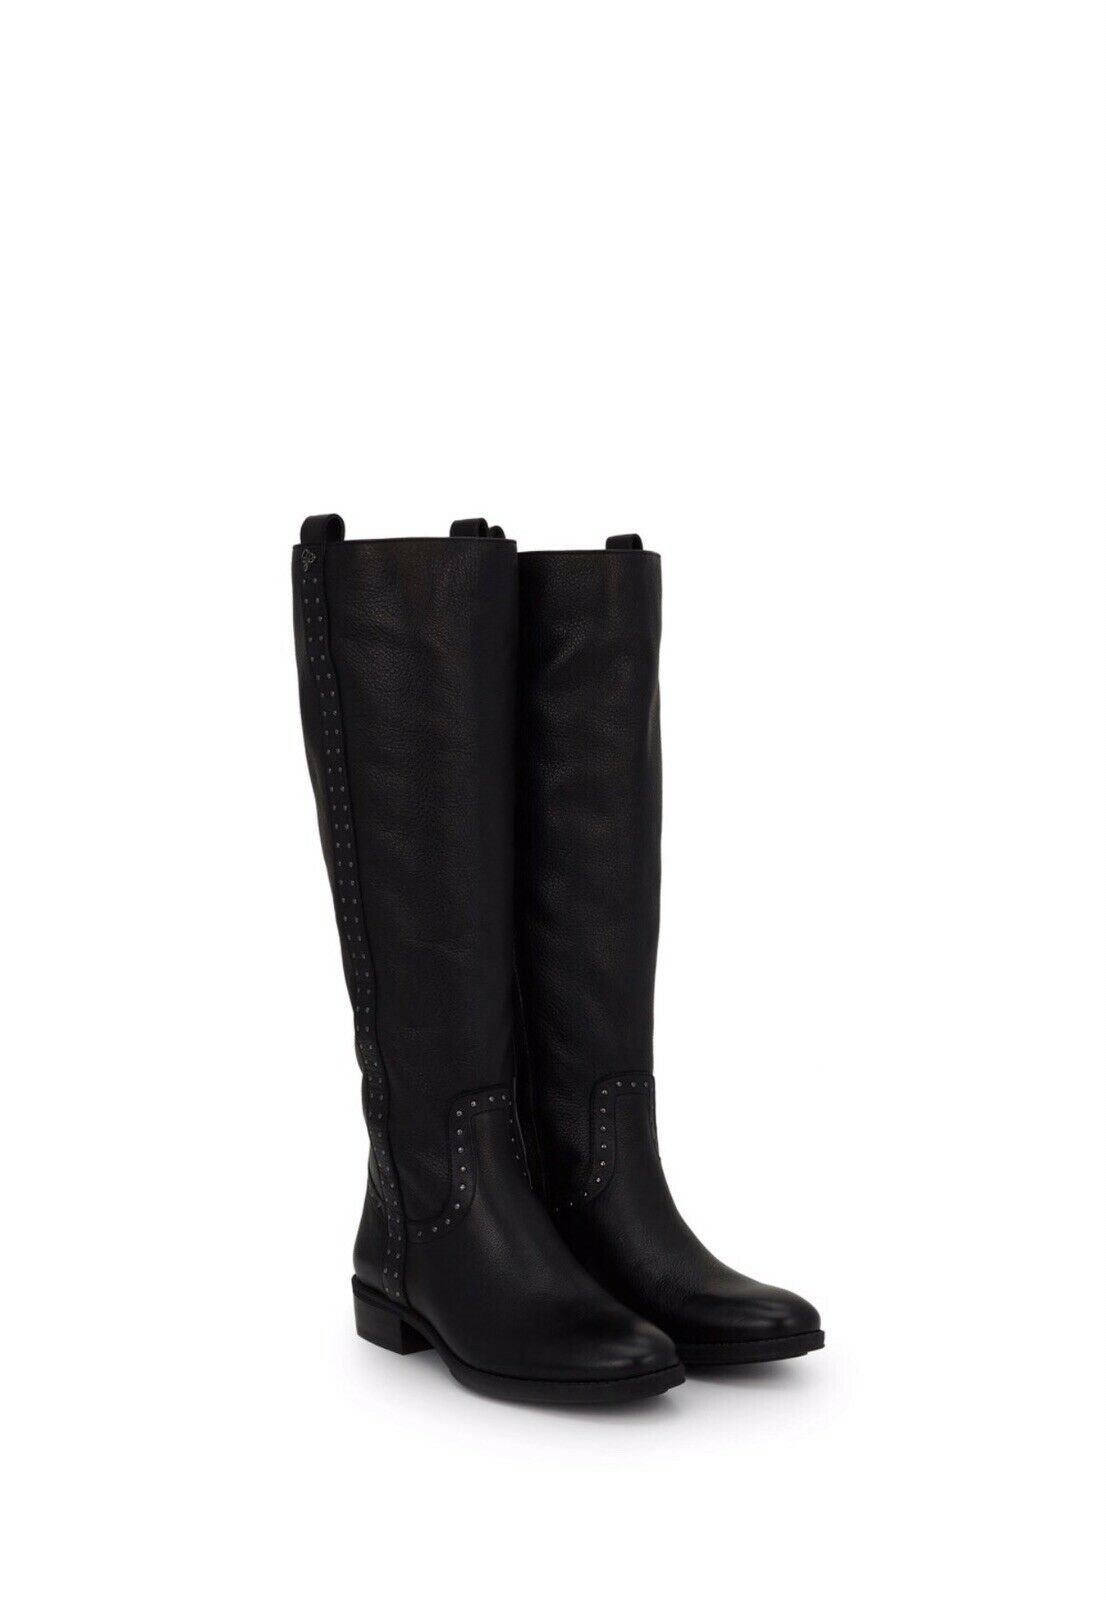 Sam Edelman Prina Leather Riding Boot Black Studded Tall Knee High Boots NEW 6